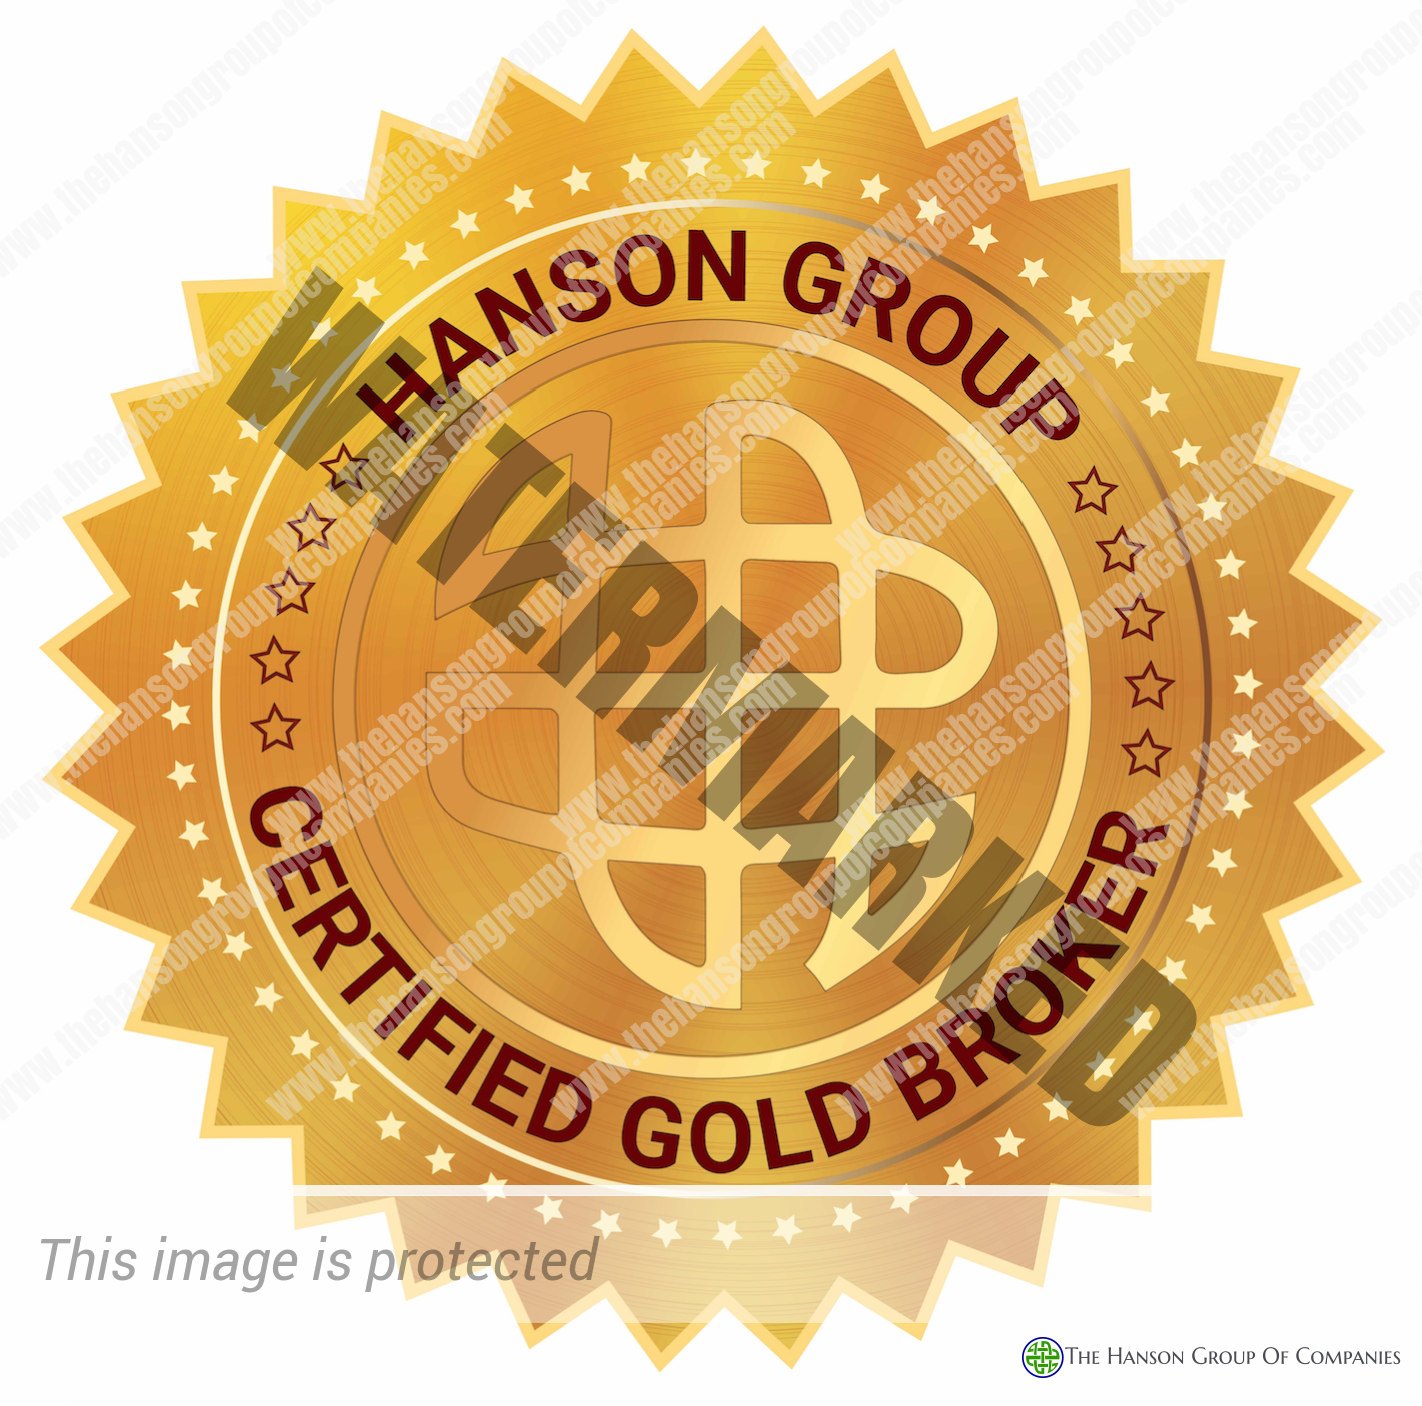 Hanson Group Gold Broker Seal